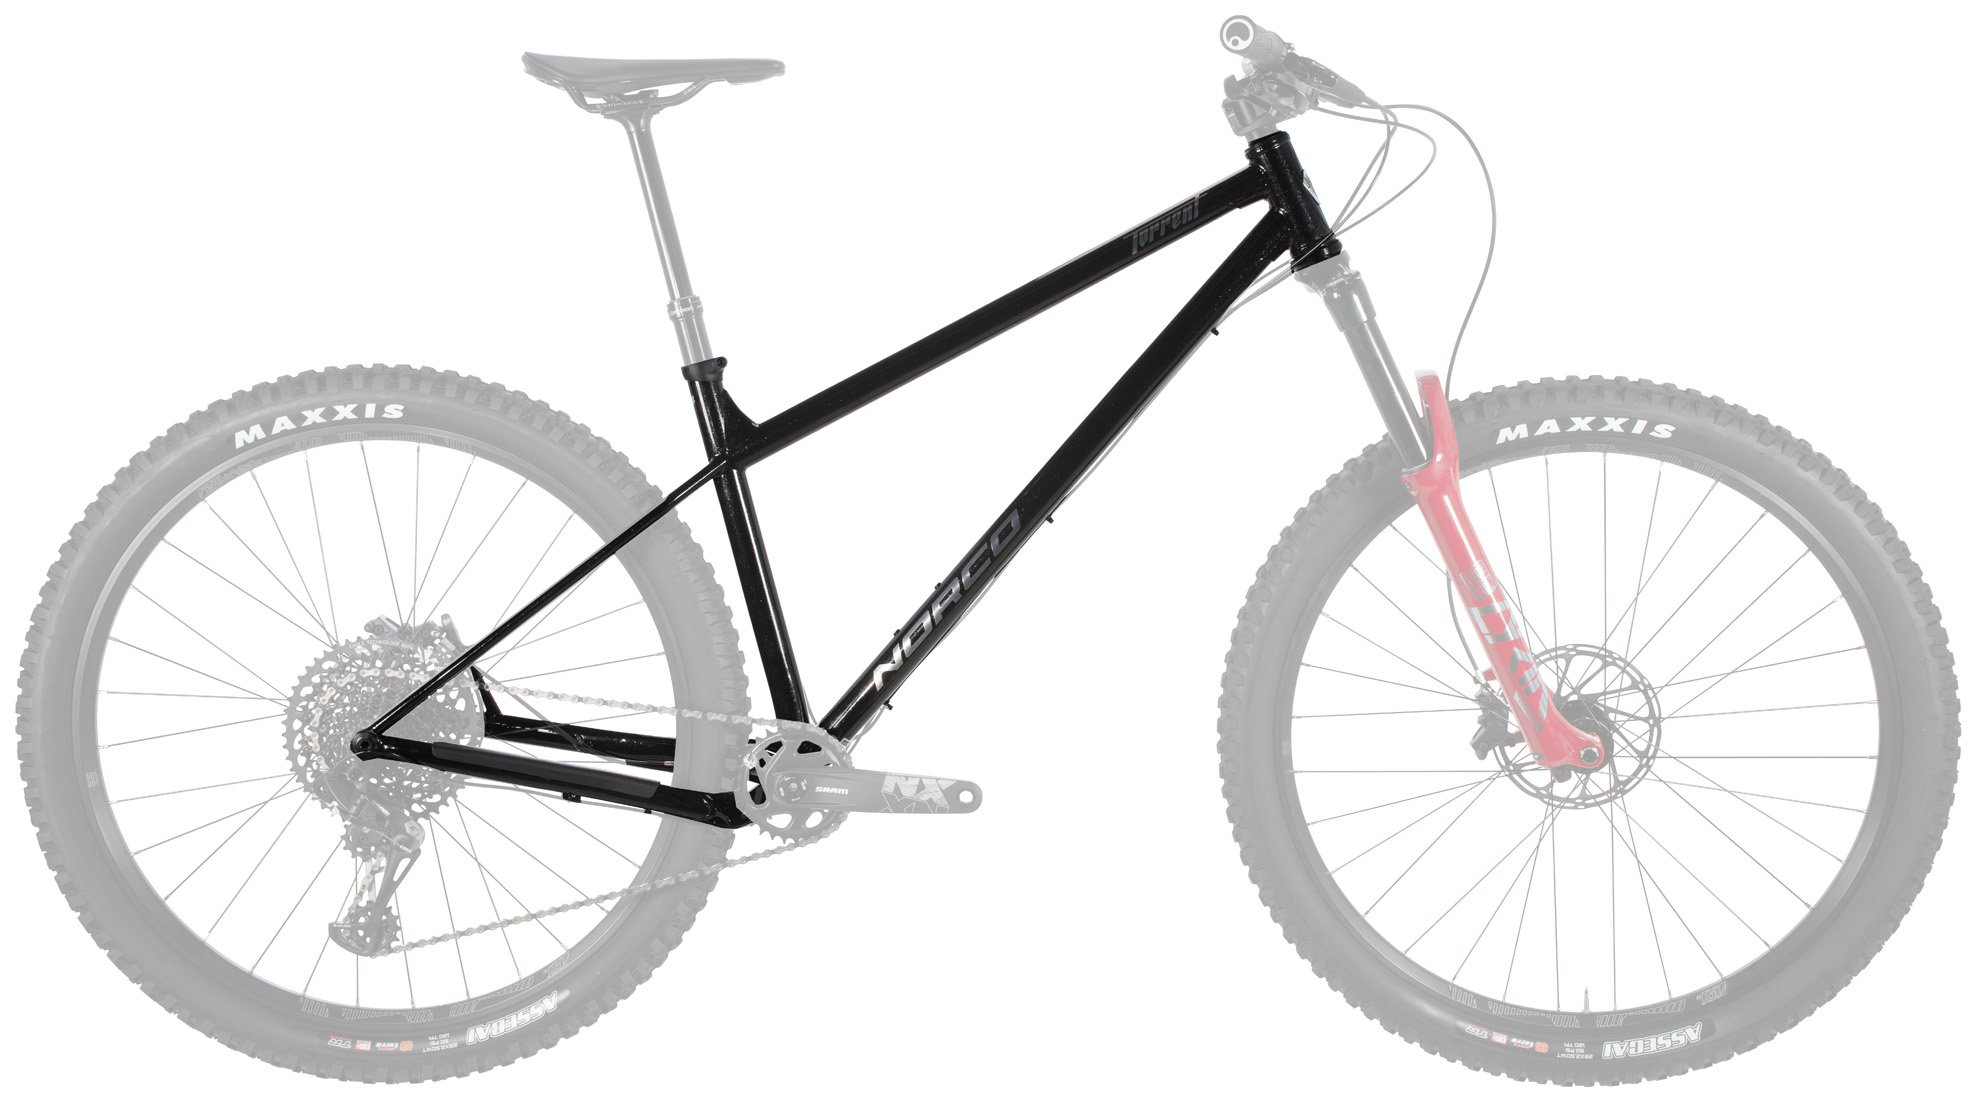 NORCO_TORRENT_PRODUCT_STUDIO_FRAME.jpg